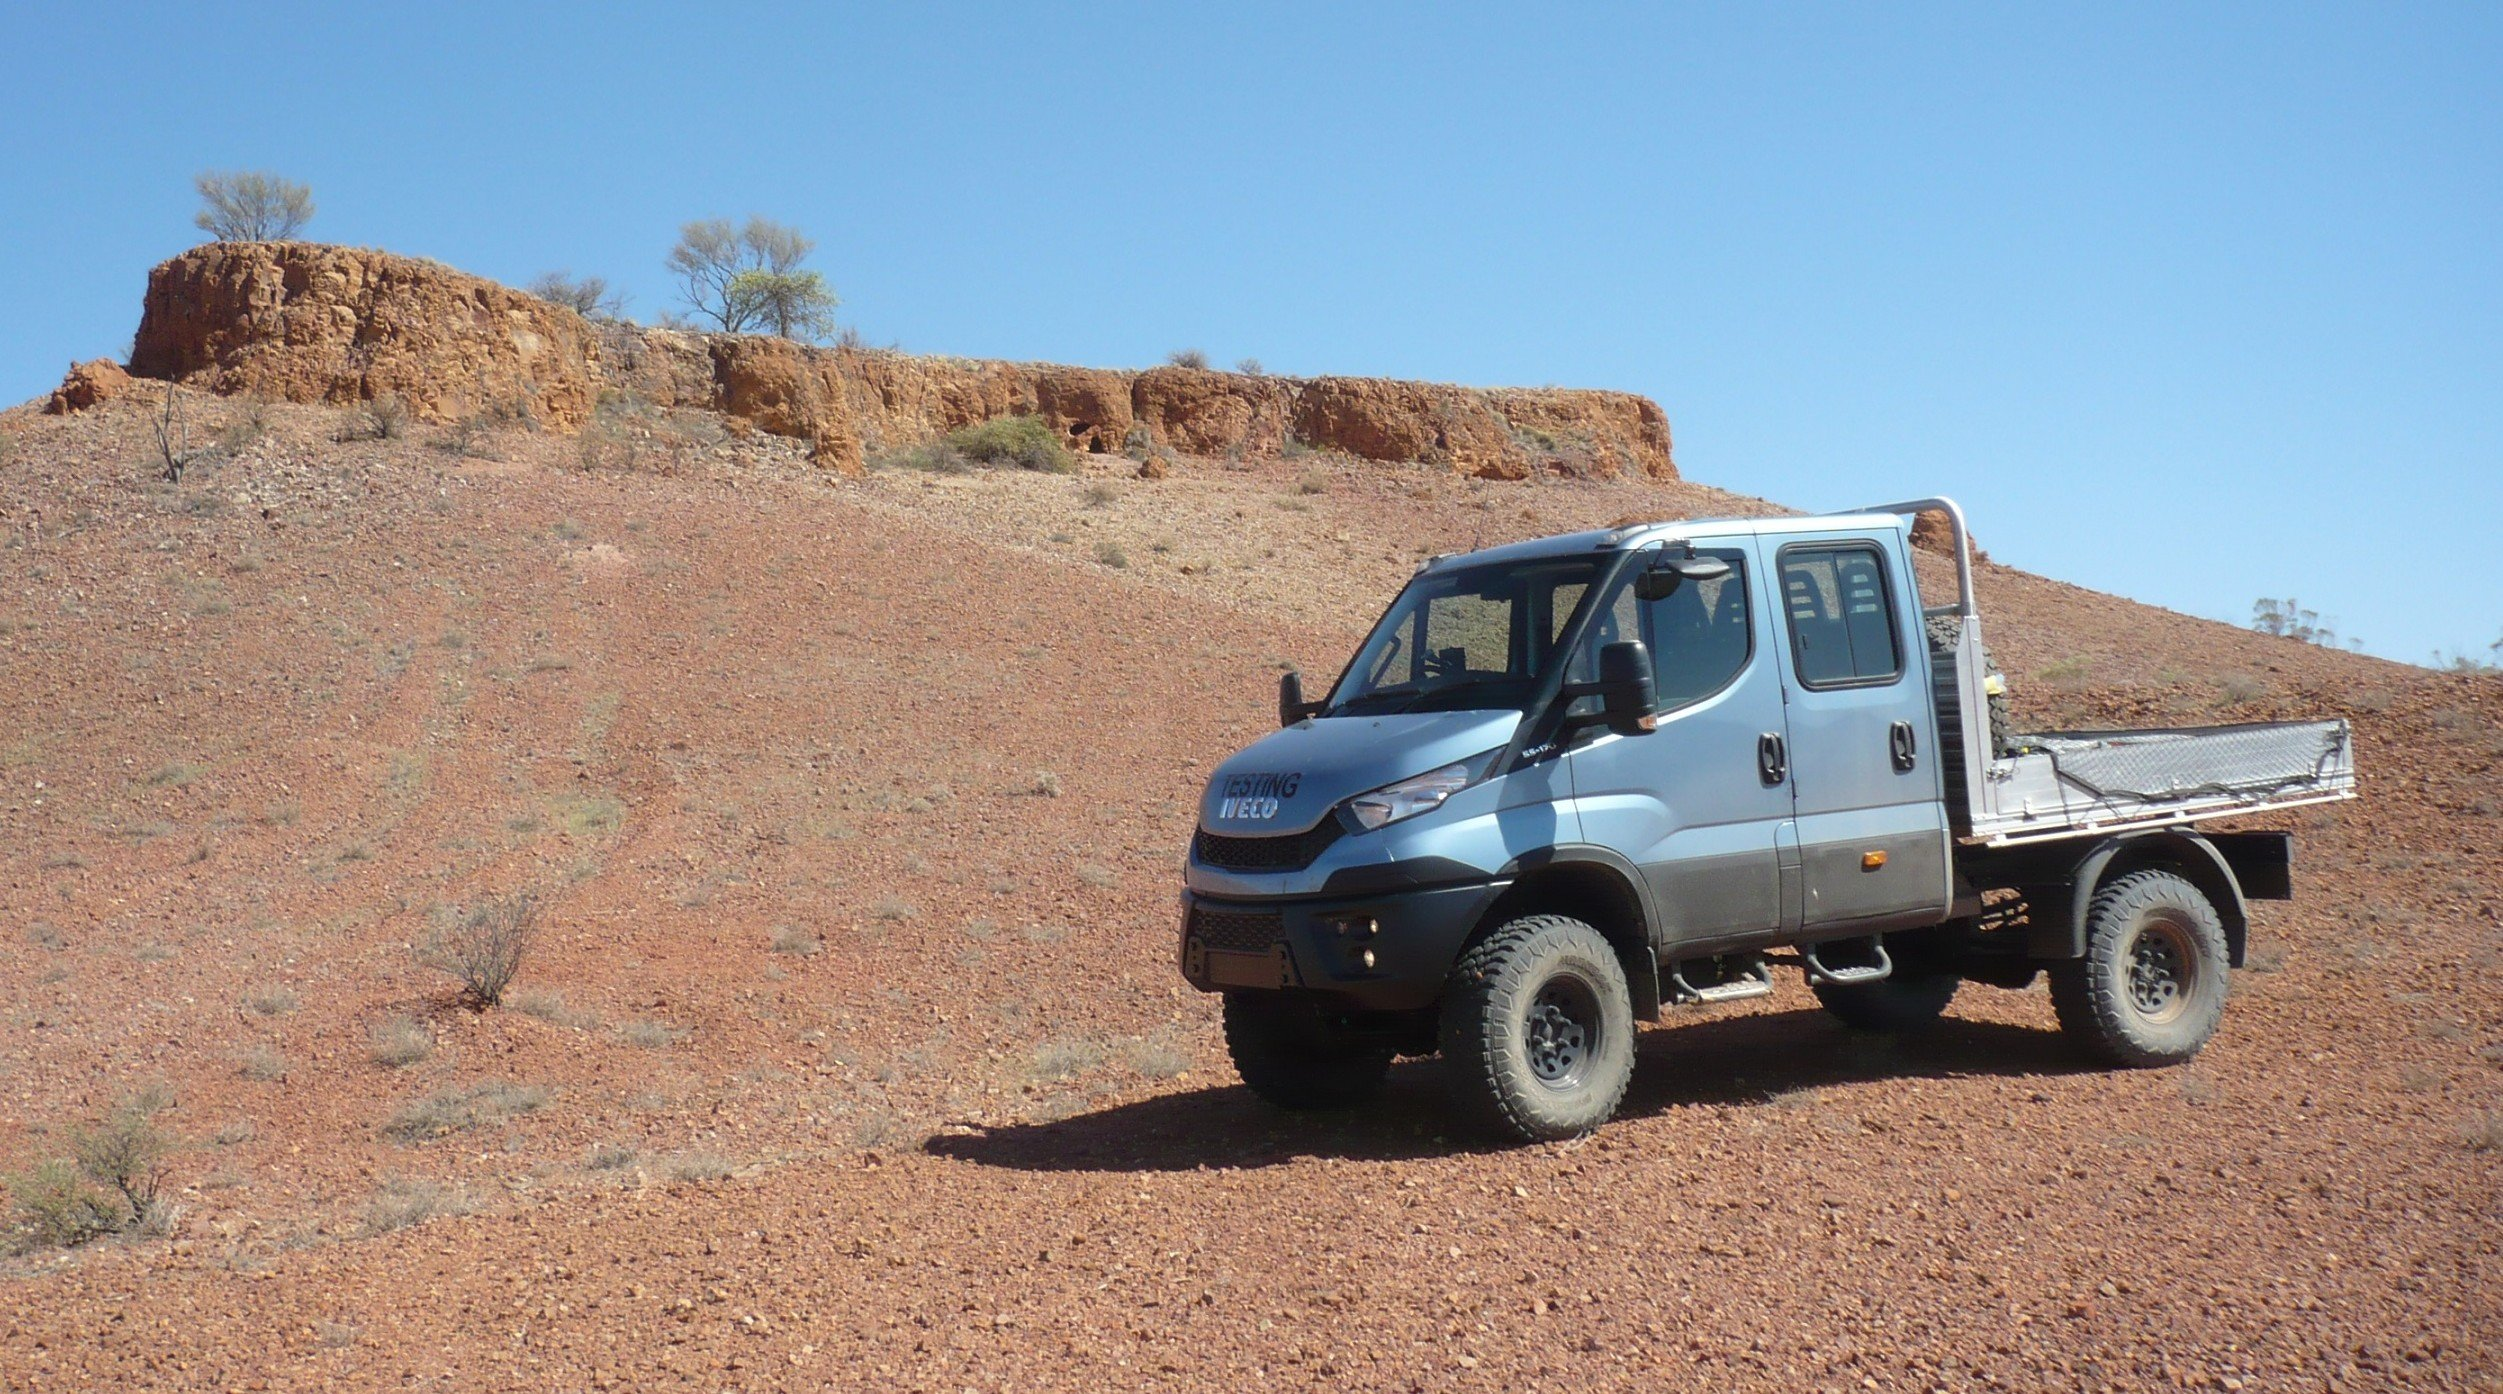 Suzuki Jimny 2018 Australia >> 2016 Iveco Daily 4x4: rigorous outback testing completed ahead of local launch - photos | CarAdvice